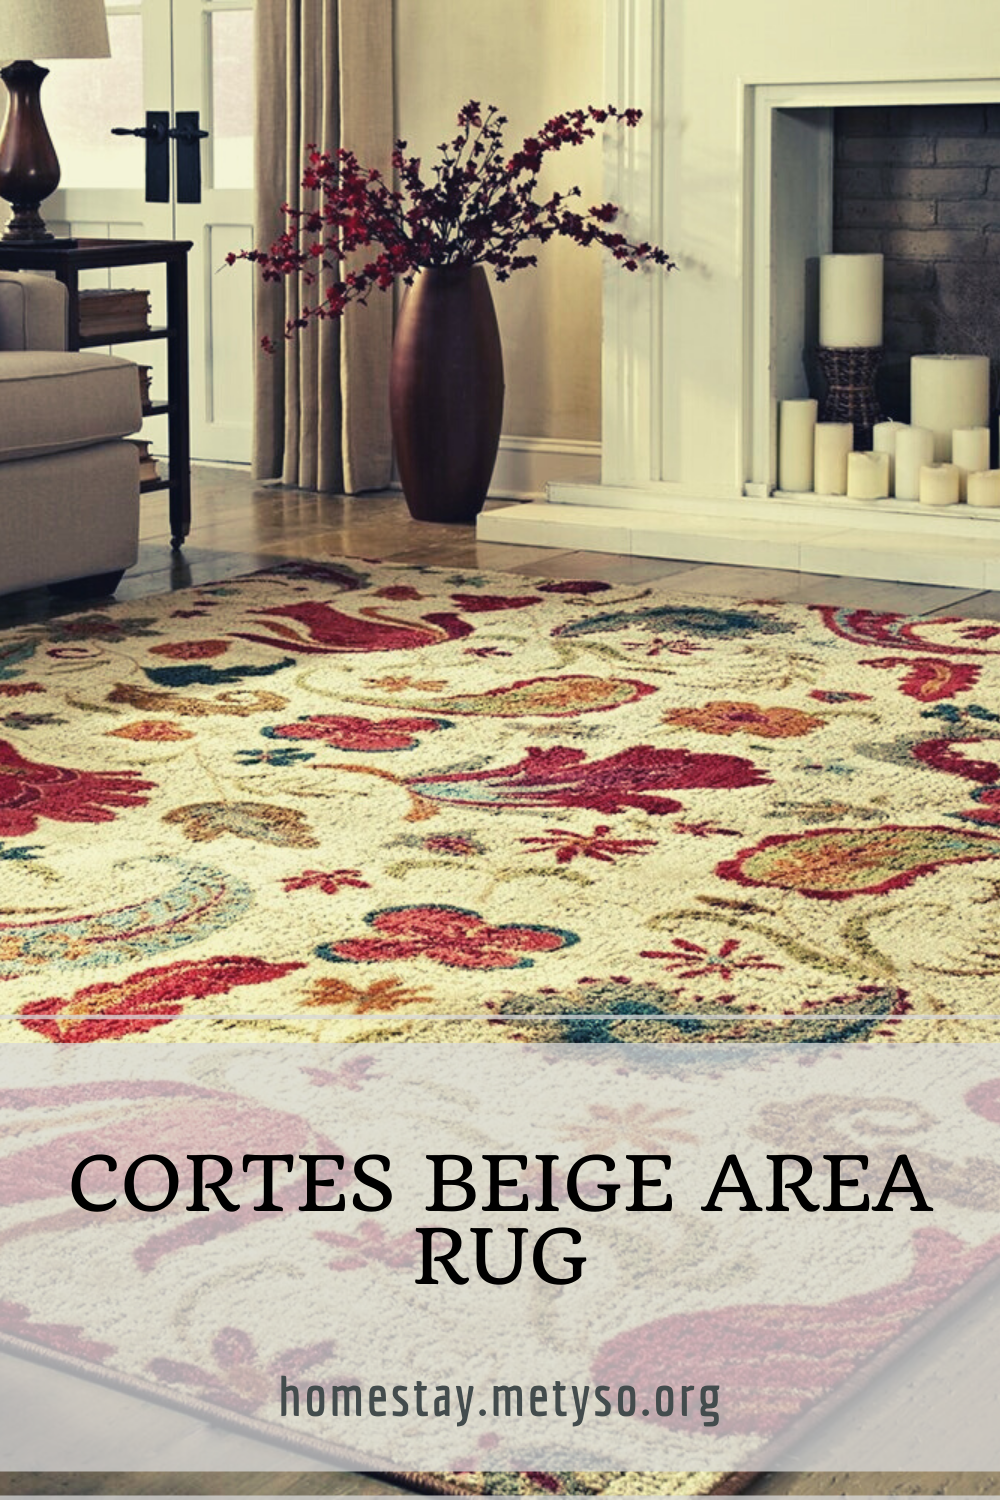 With classic aesthetics and simpel details,who else can never get enough of some good Area Rug? Keep scrolling for some serious interior inspo! Continue to read.. #arearugs #arearug #arearugcleaning #arearugsale #arearugshopping